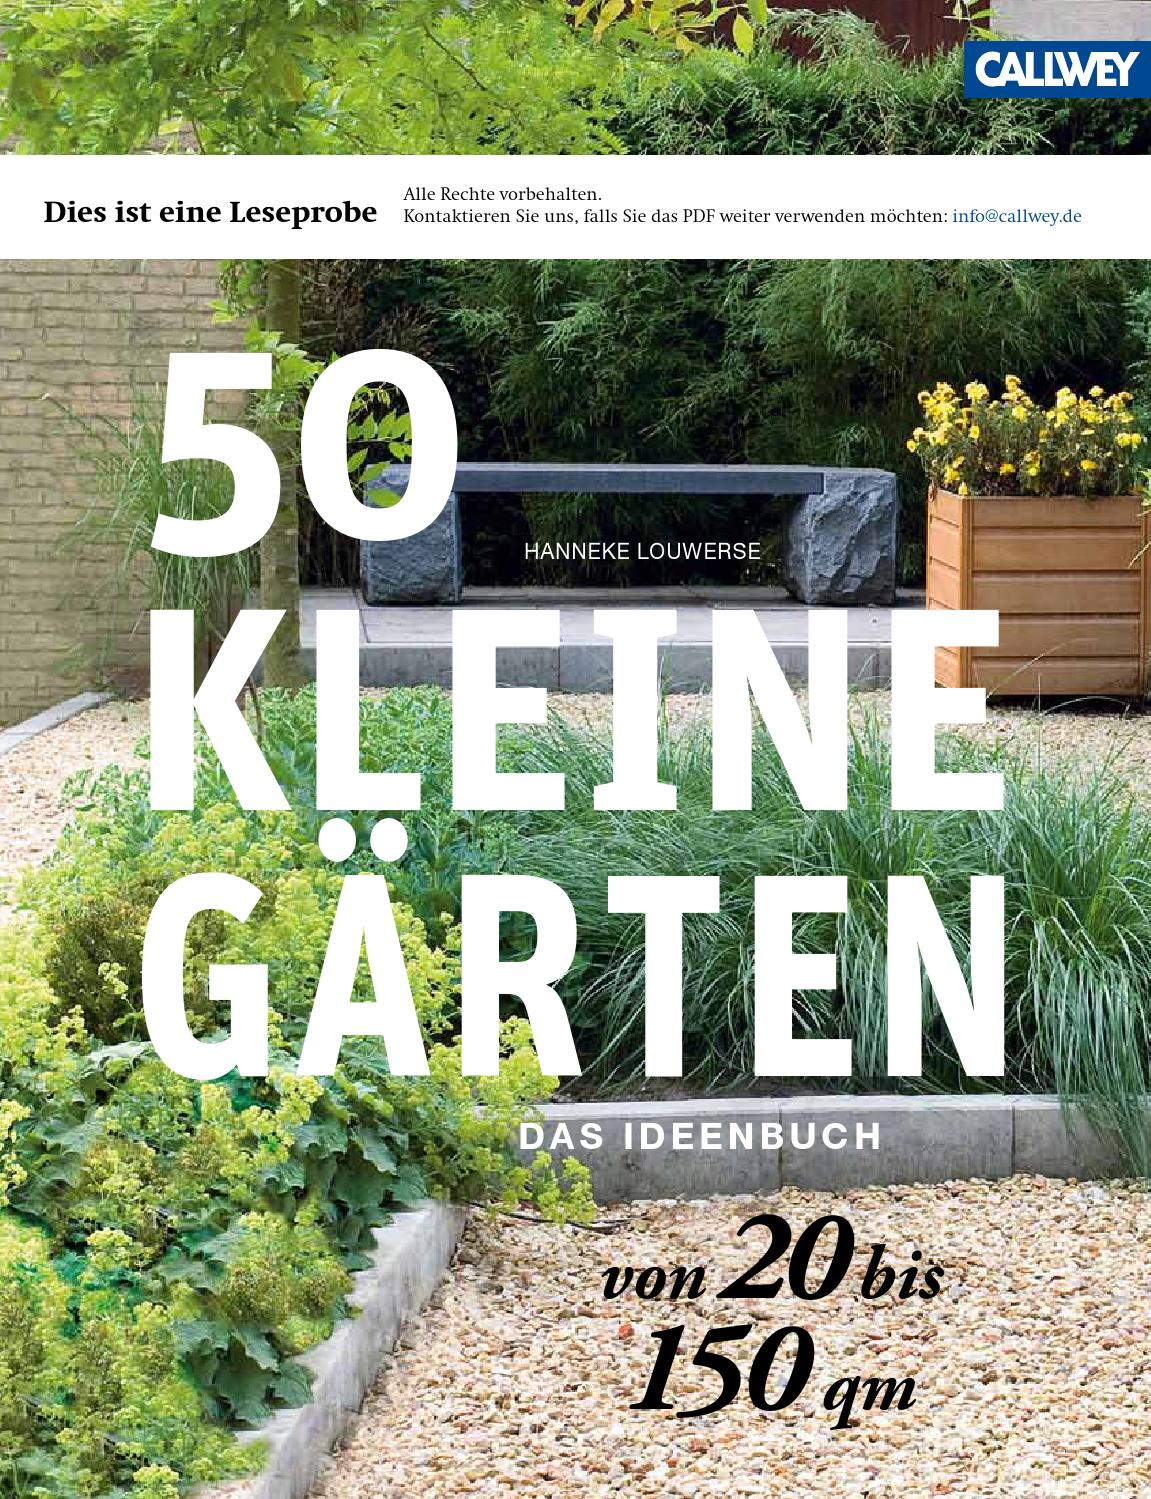 louwerse 50 kleine gaerten callwey issuu by georg d w callwey gmbh co kg issuu. Black Bedroom Furniture Sets. Home Design Ideas